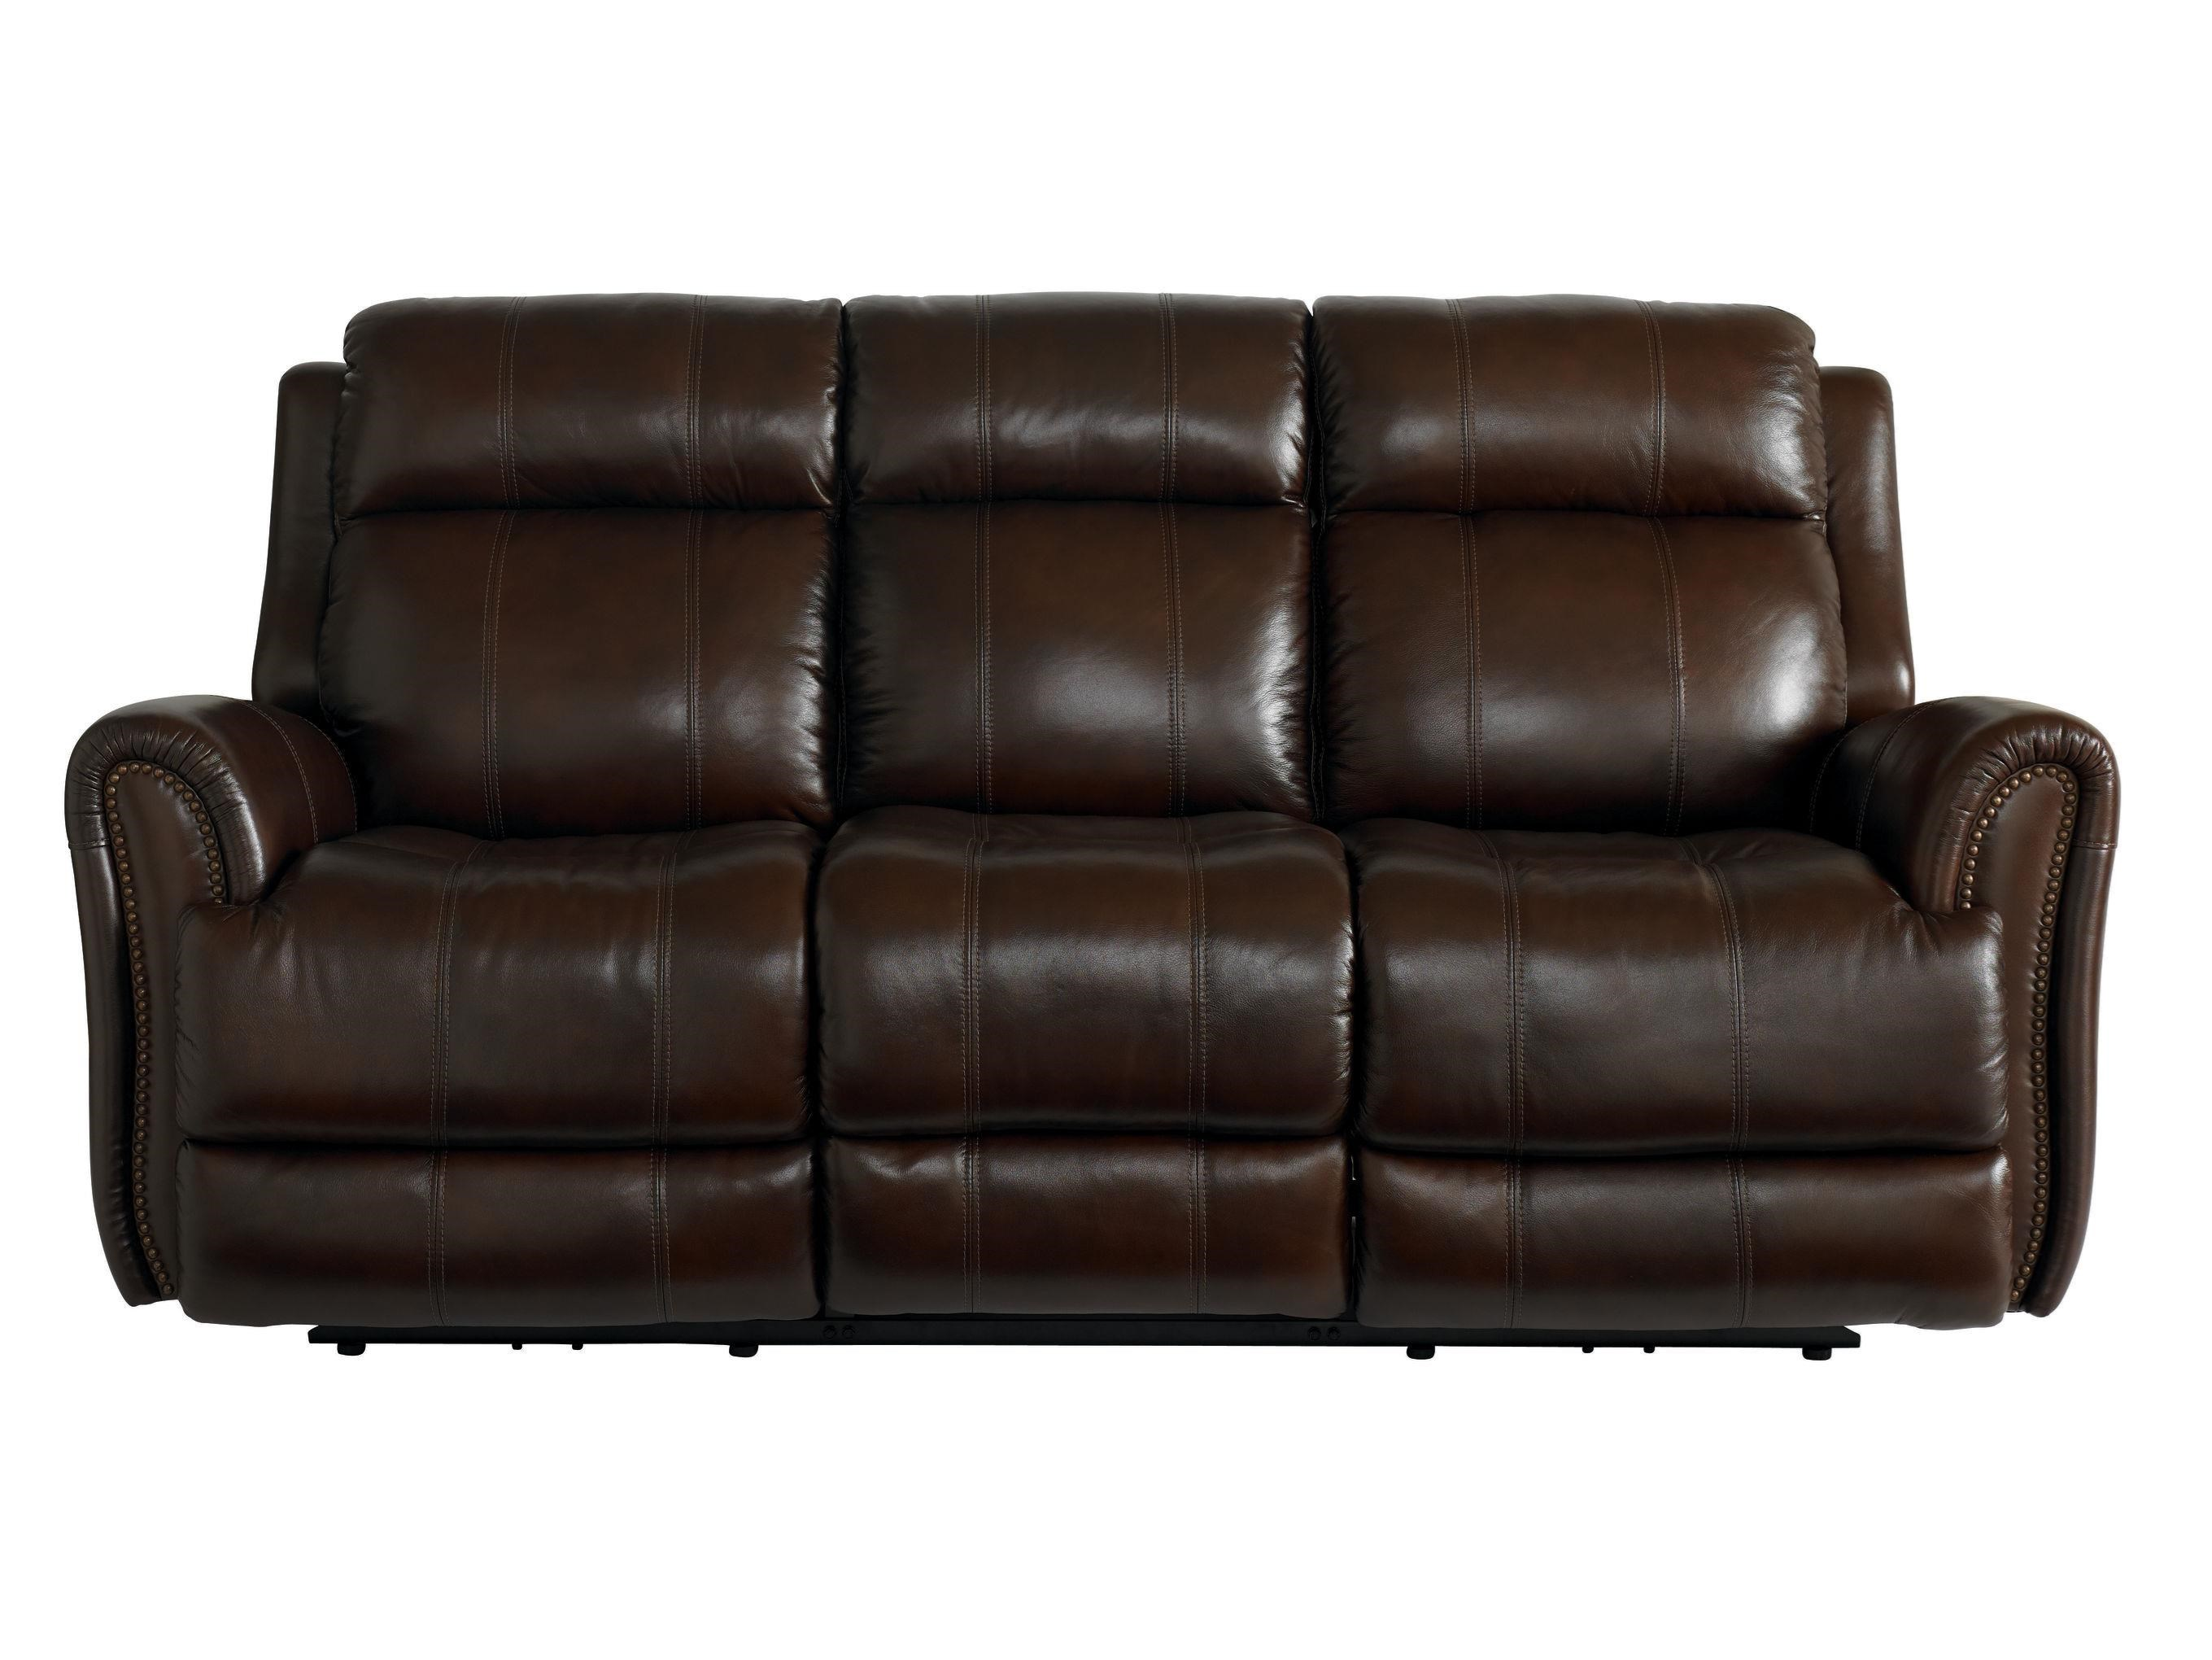 Bassett Marquee Chocolate Lthr Pwr Recl Sofa w/Pwr Head - Item Number: 3707-P62C